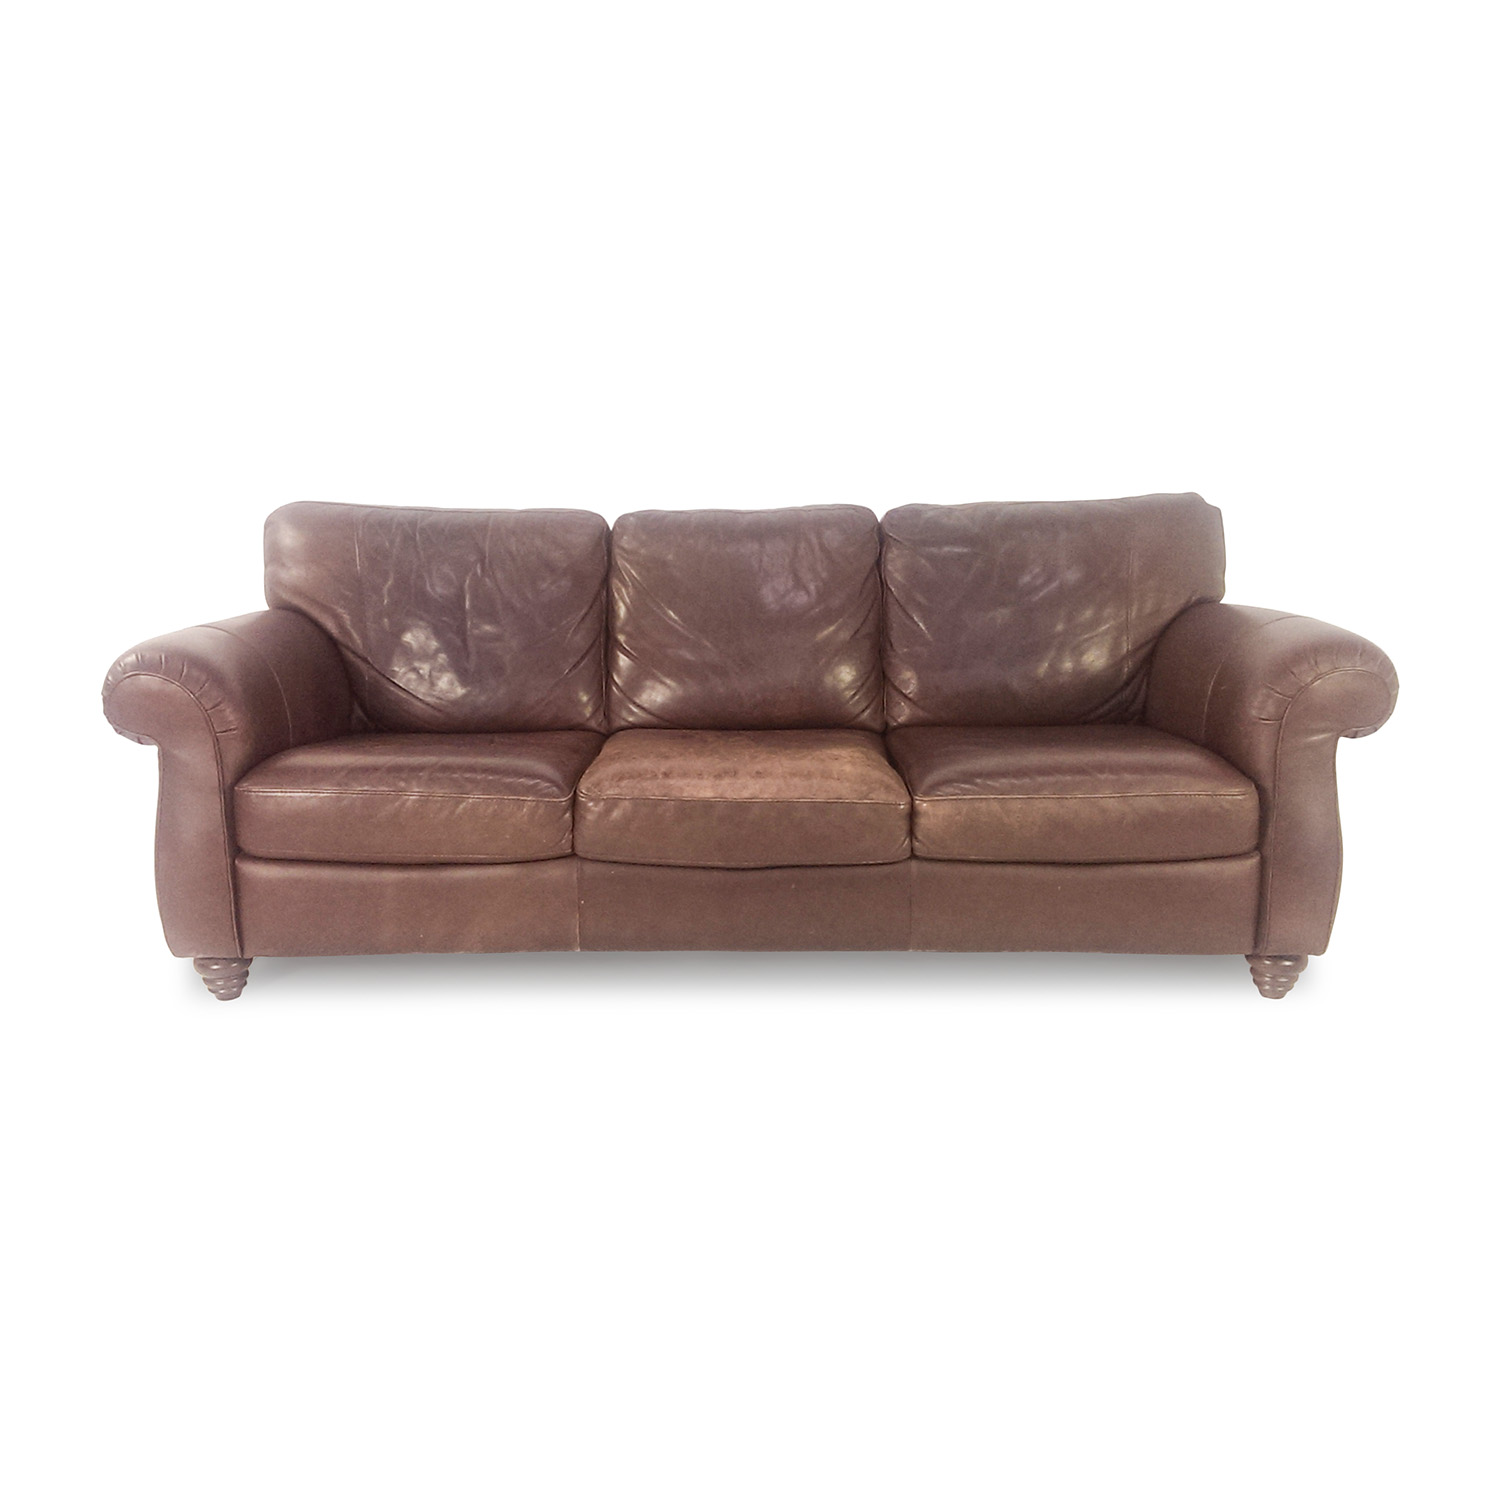 Brown Real Leather Couch 85 Off Natuzzi Natuzzi Brown Leather Couch Sofas